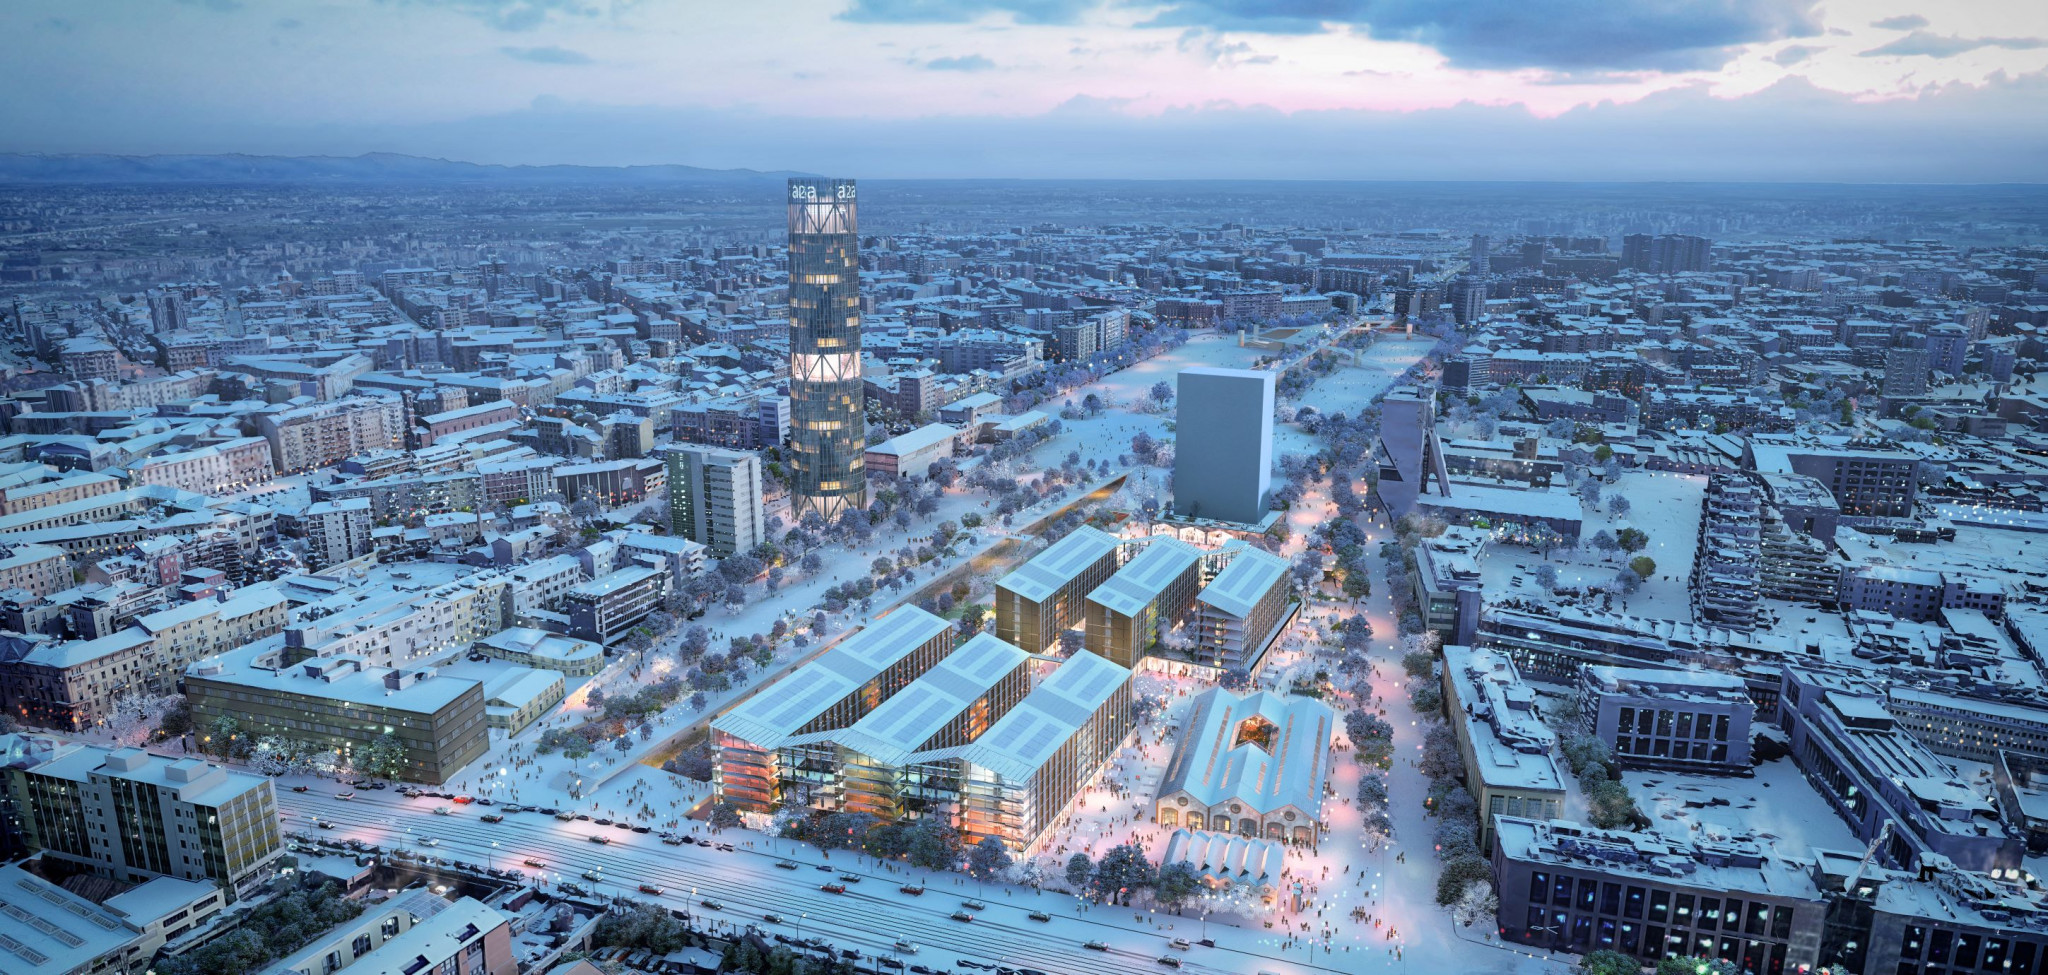 Plans unveiled for 2026 Winter Olympics Village in Milan